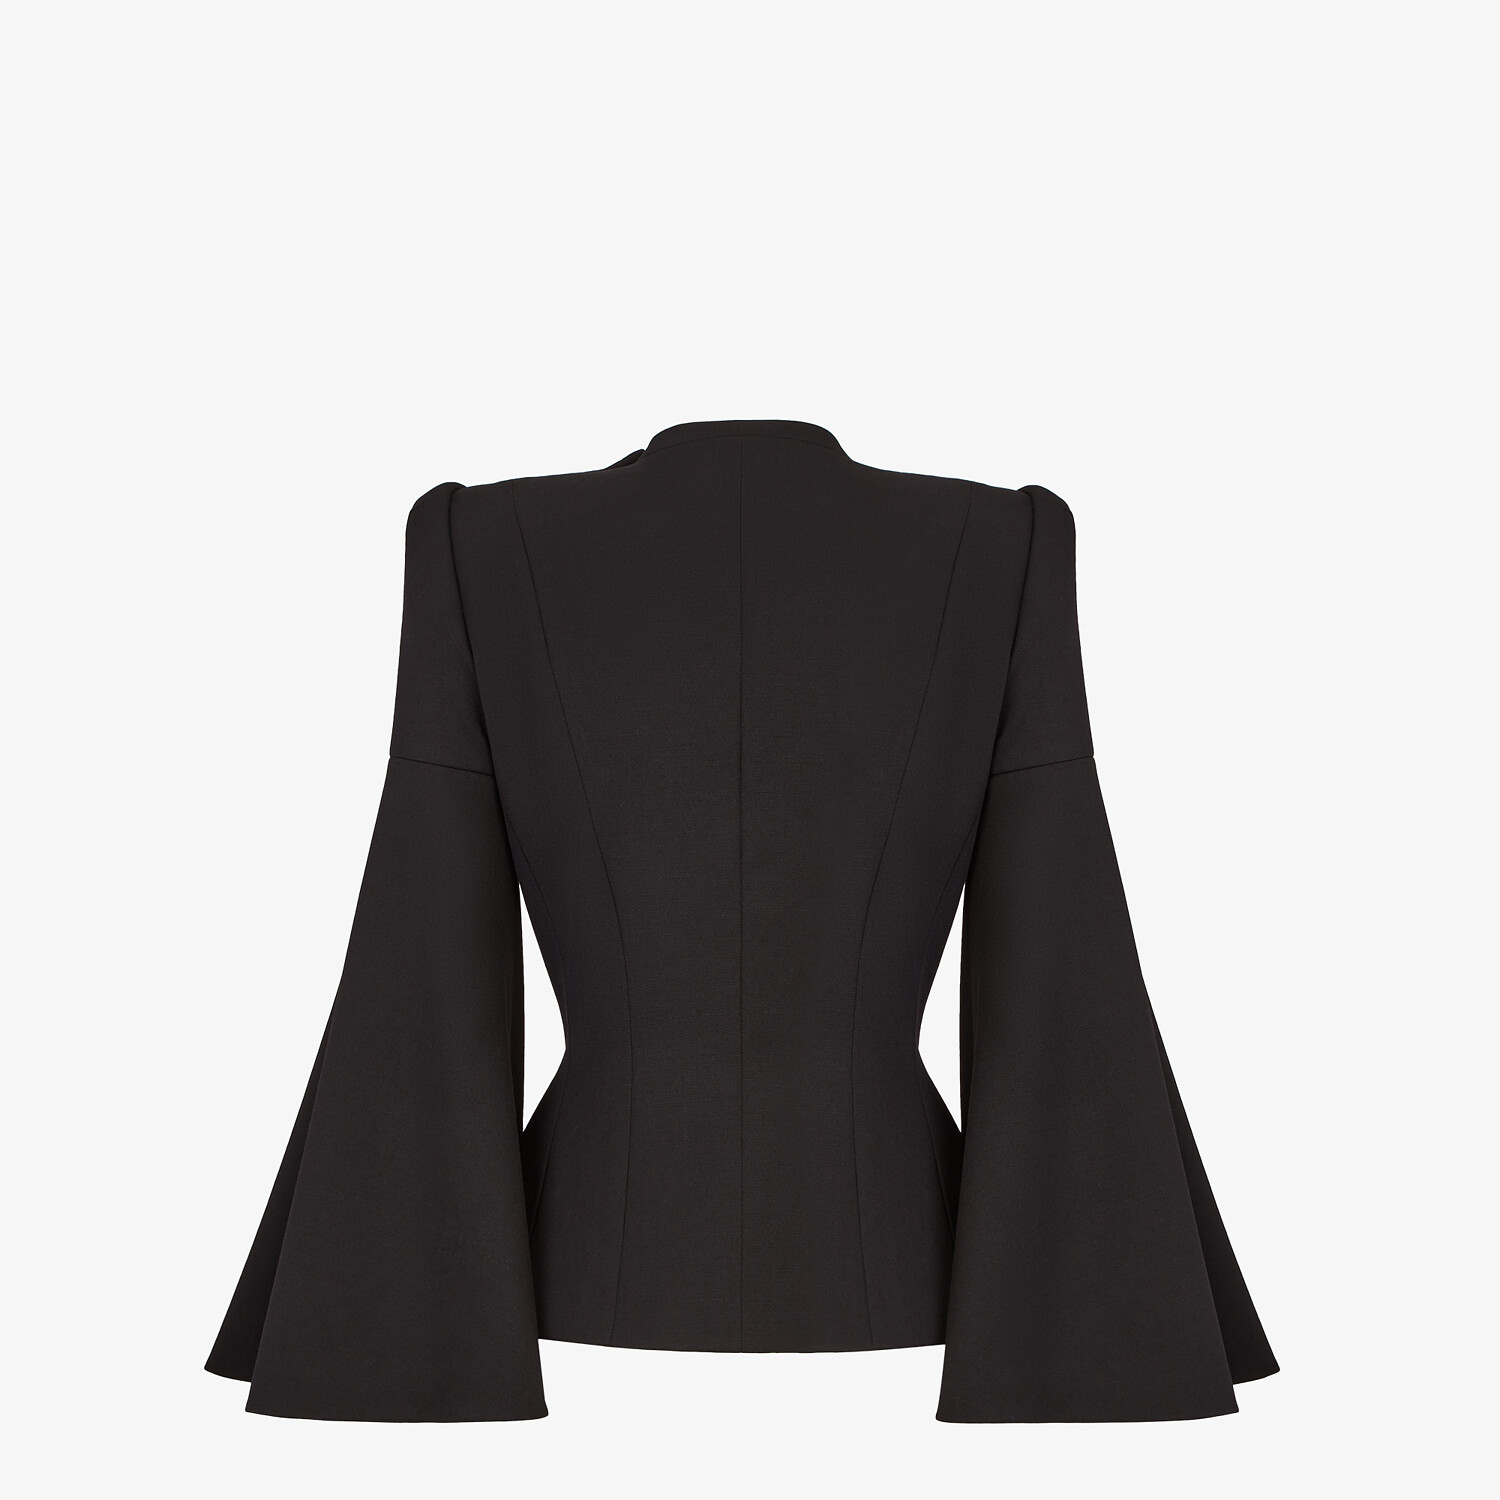 FENDI JACKET - Black silk and wool jacket - view 2 detail